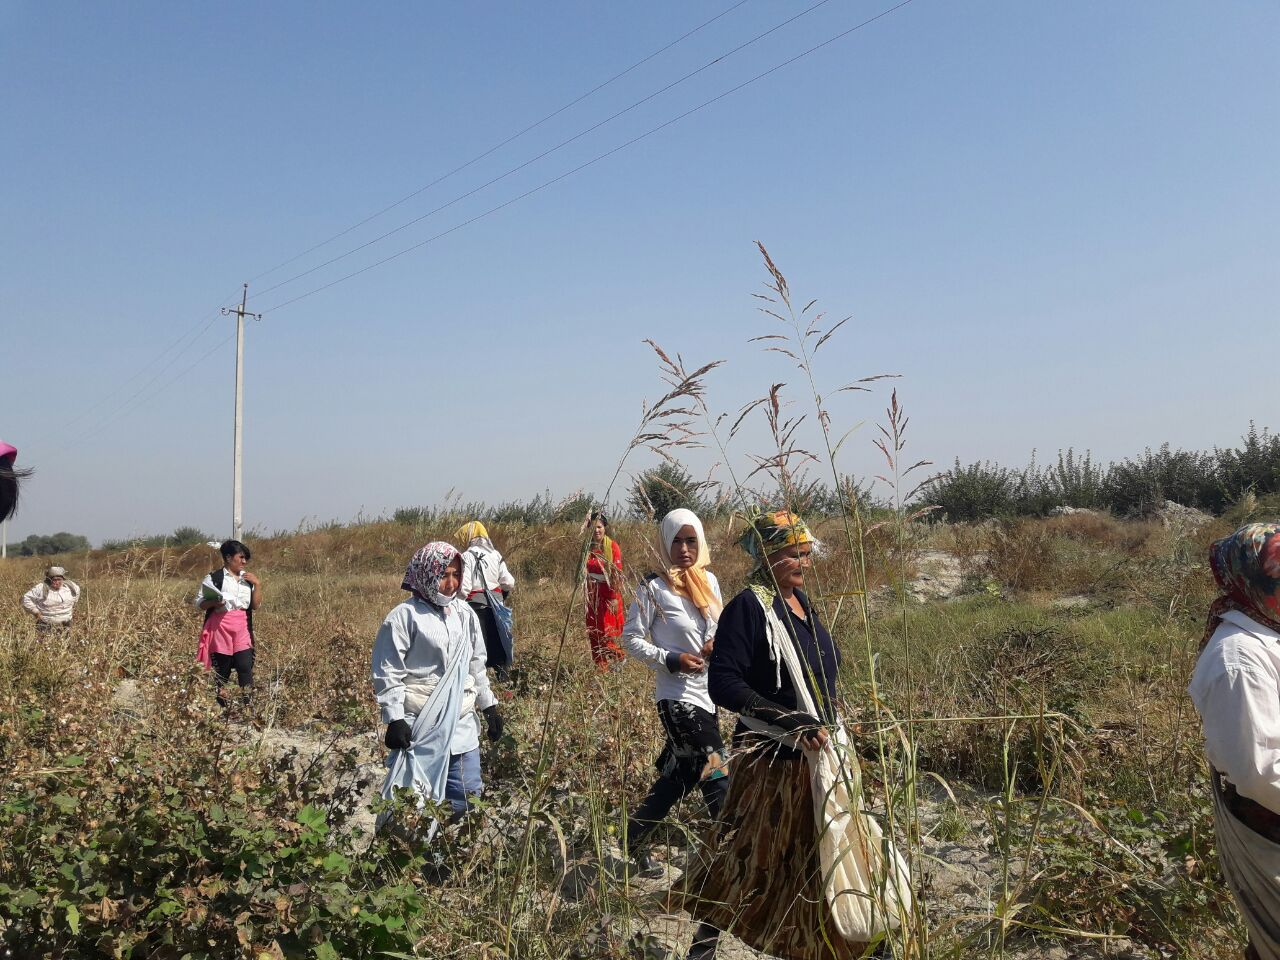 Some Workers Excused from Cotton Fields